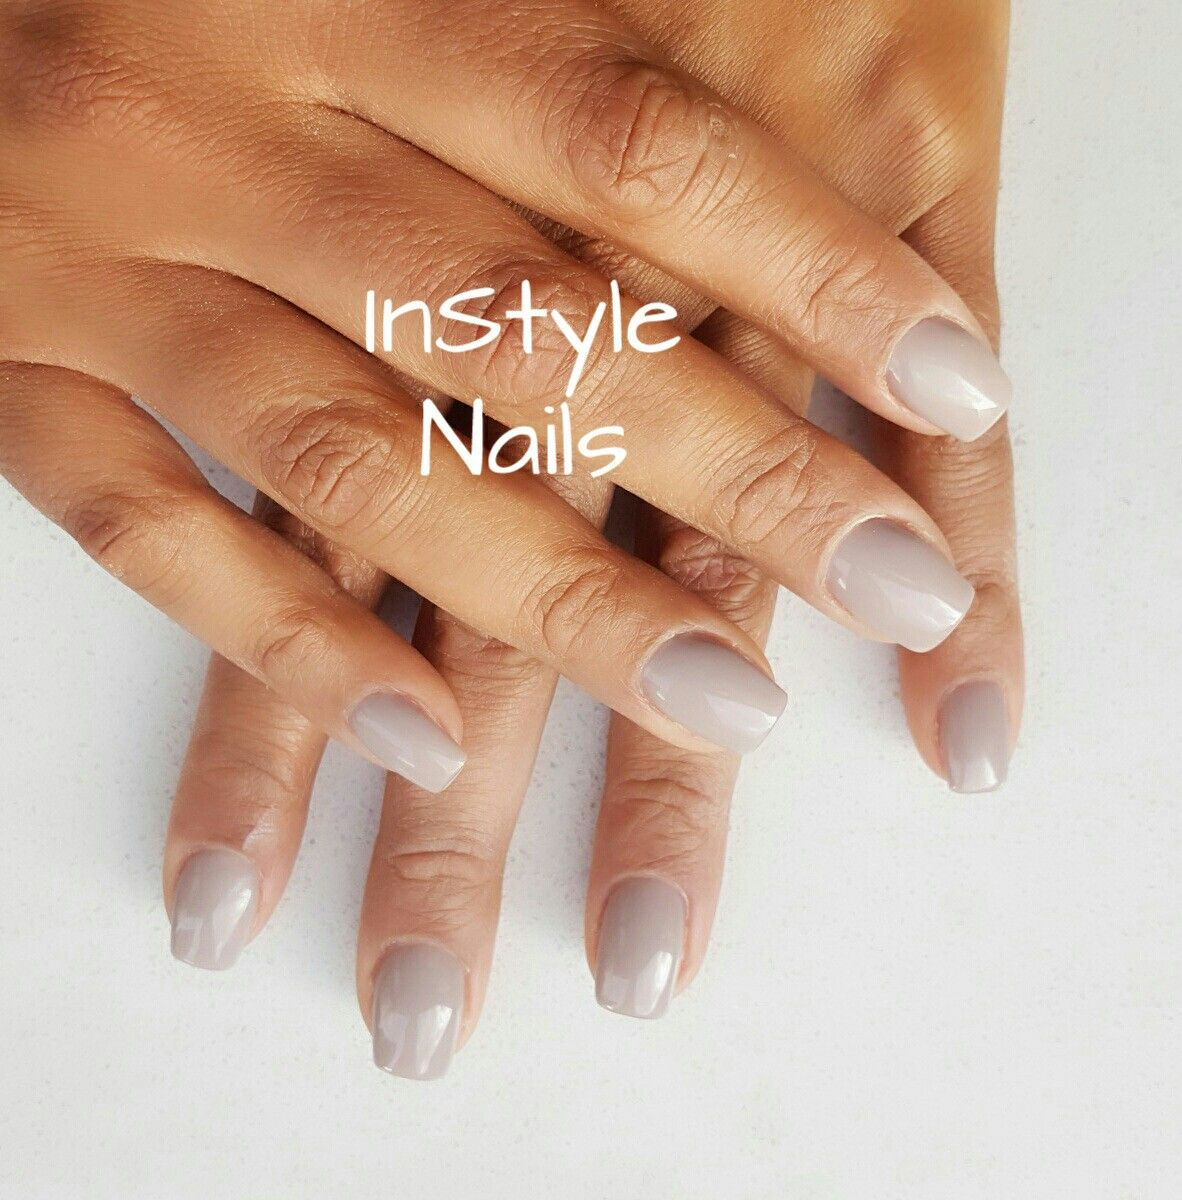 Pin by Patricia Nagelstudio InStyle Nails on Nice nails! | Pinterest ...